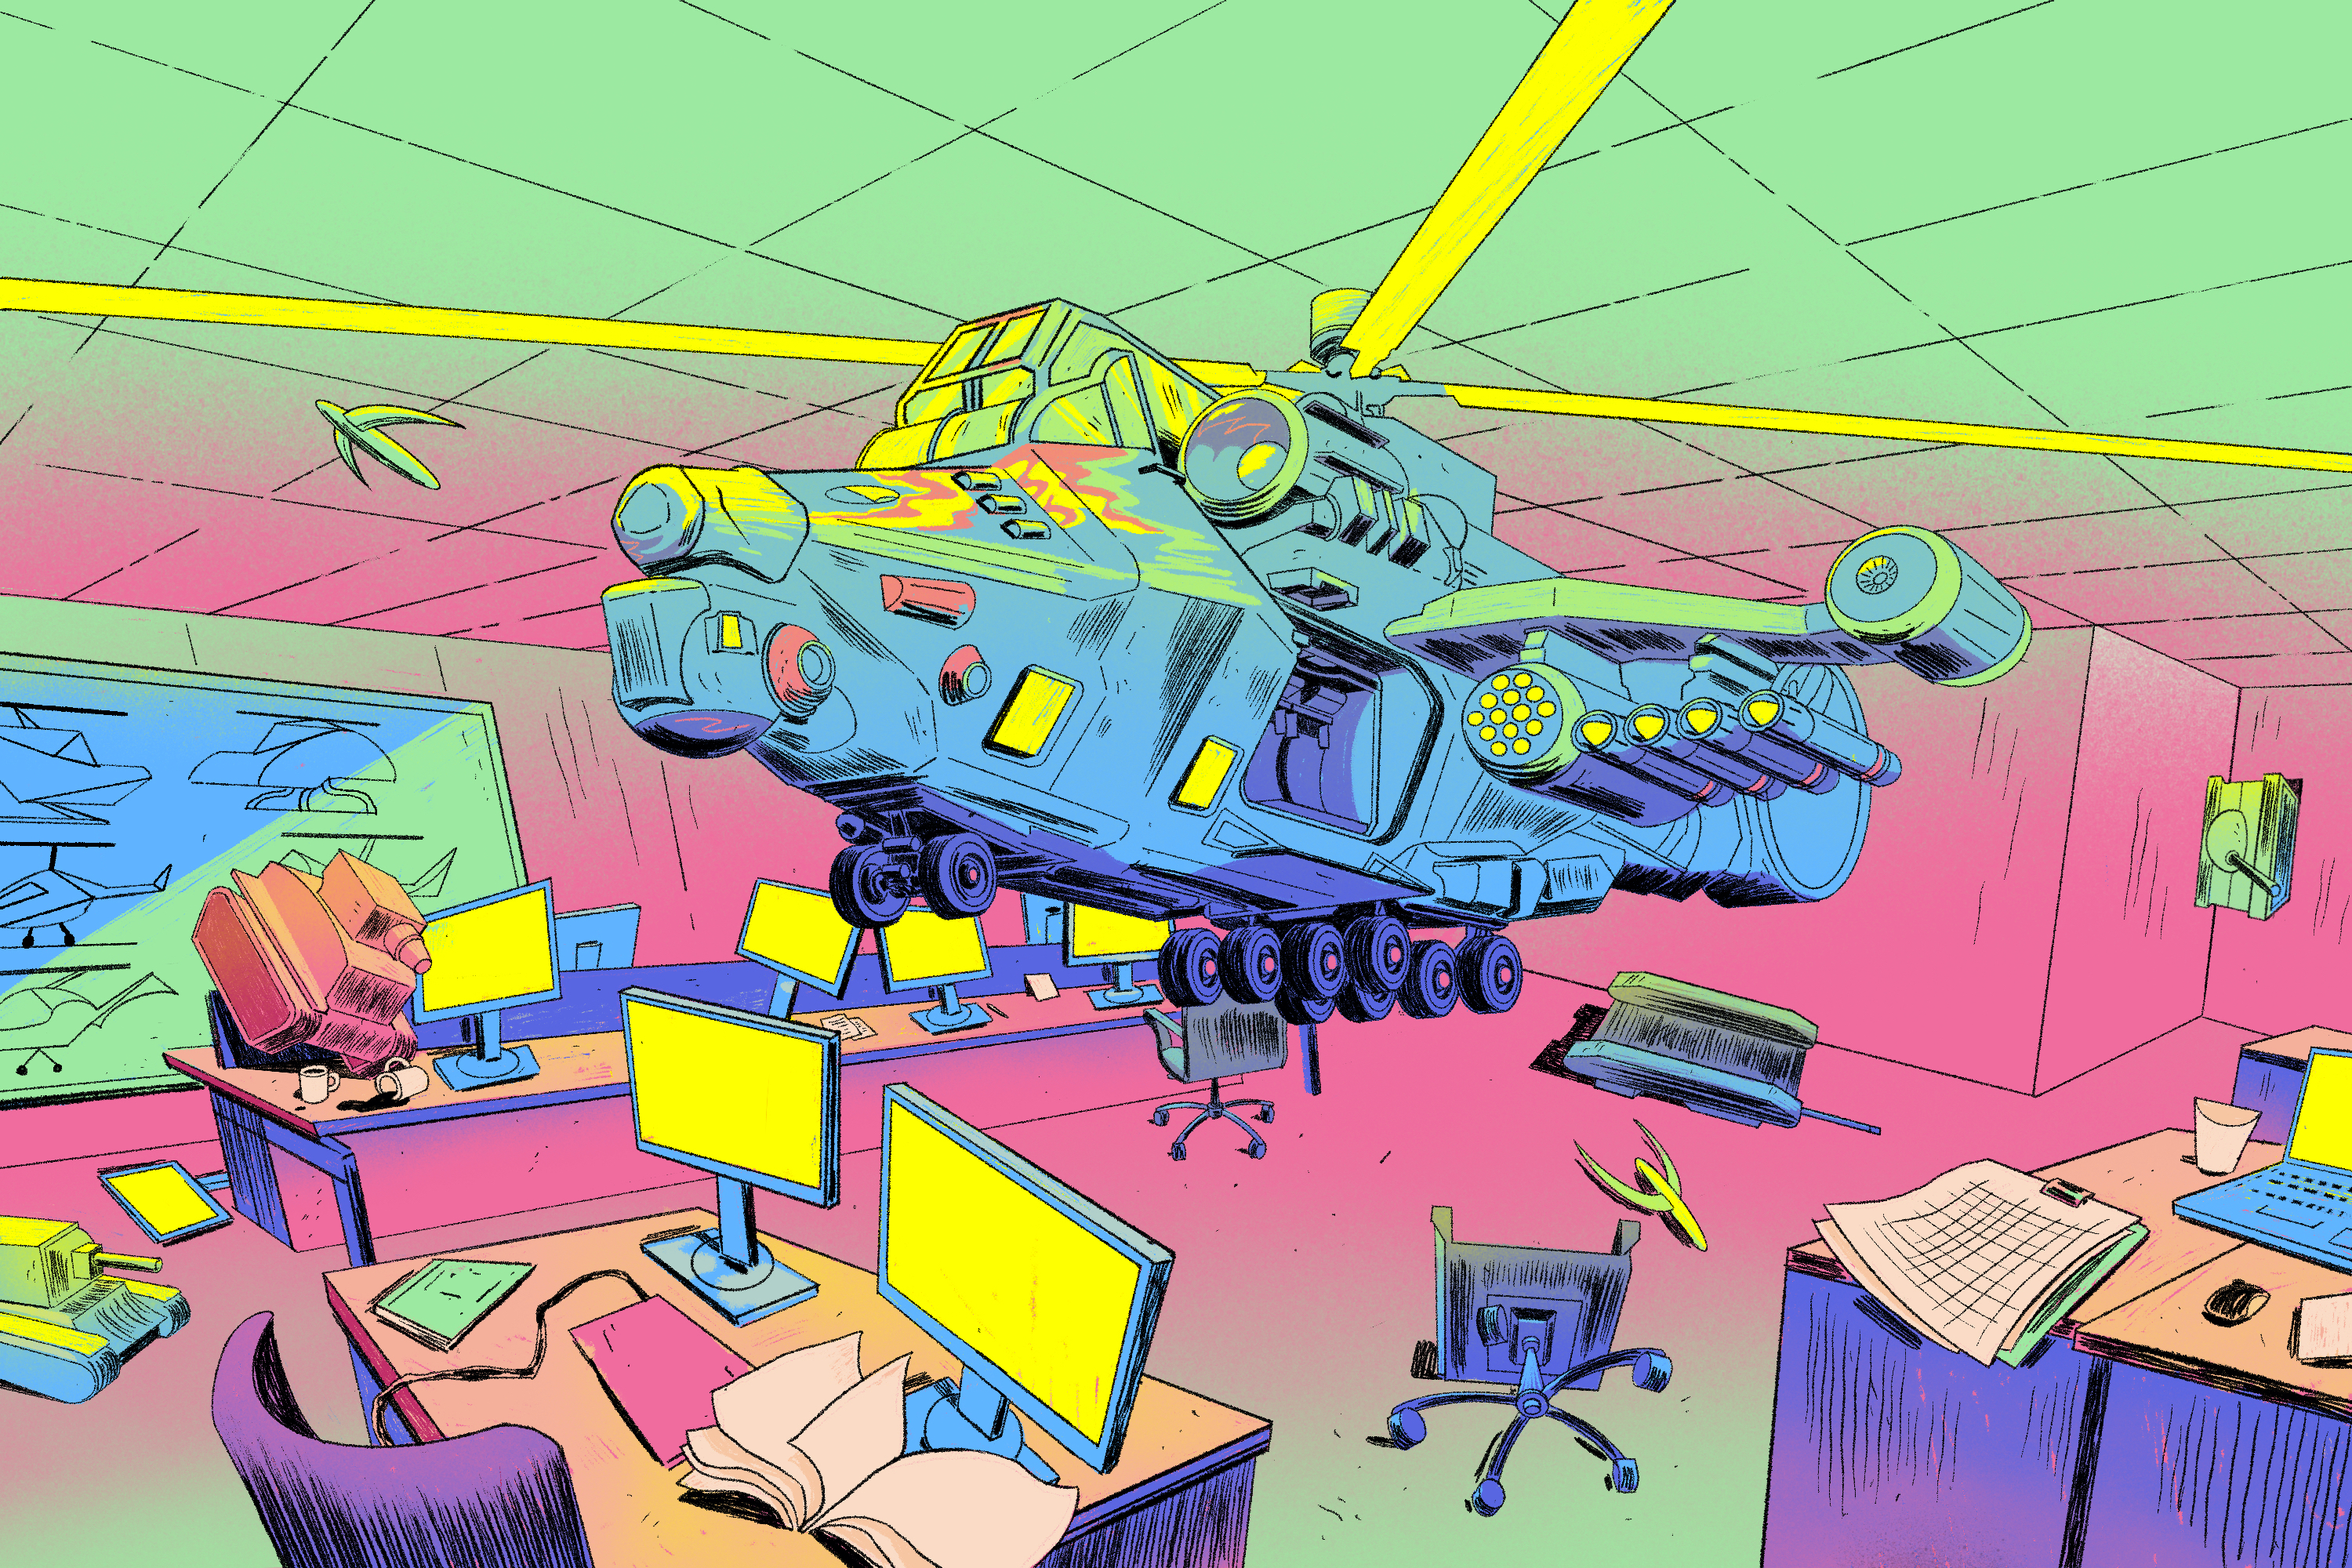 A helicopter hovers inside an office, causing a mess